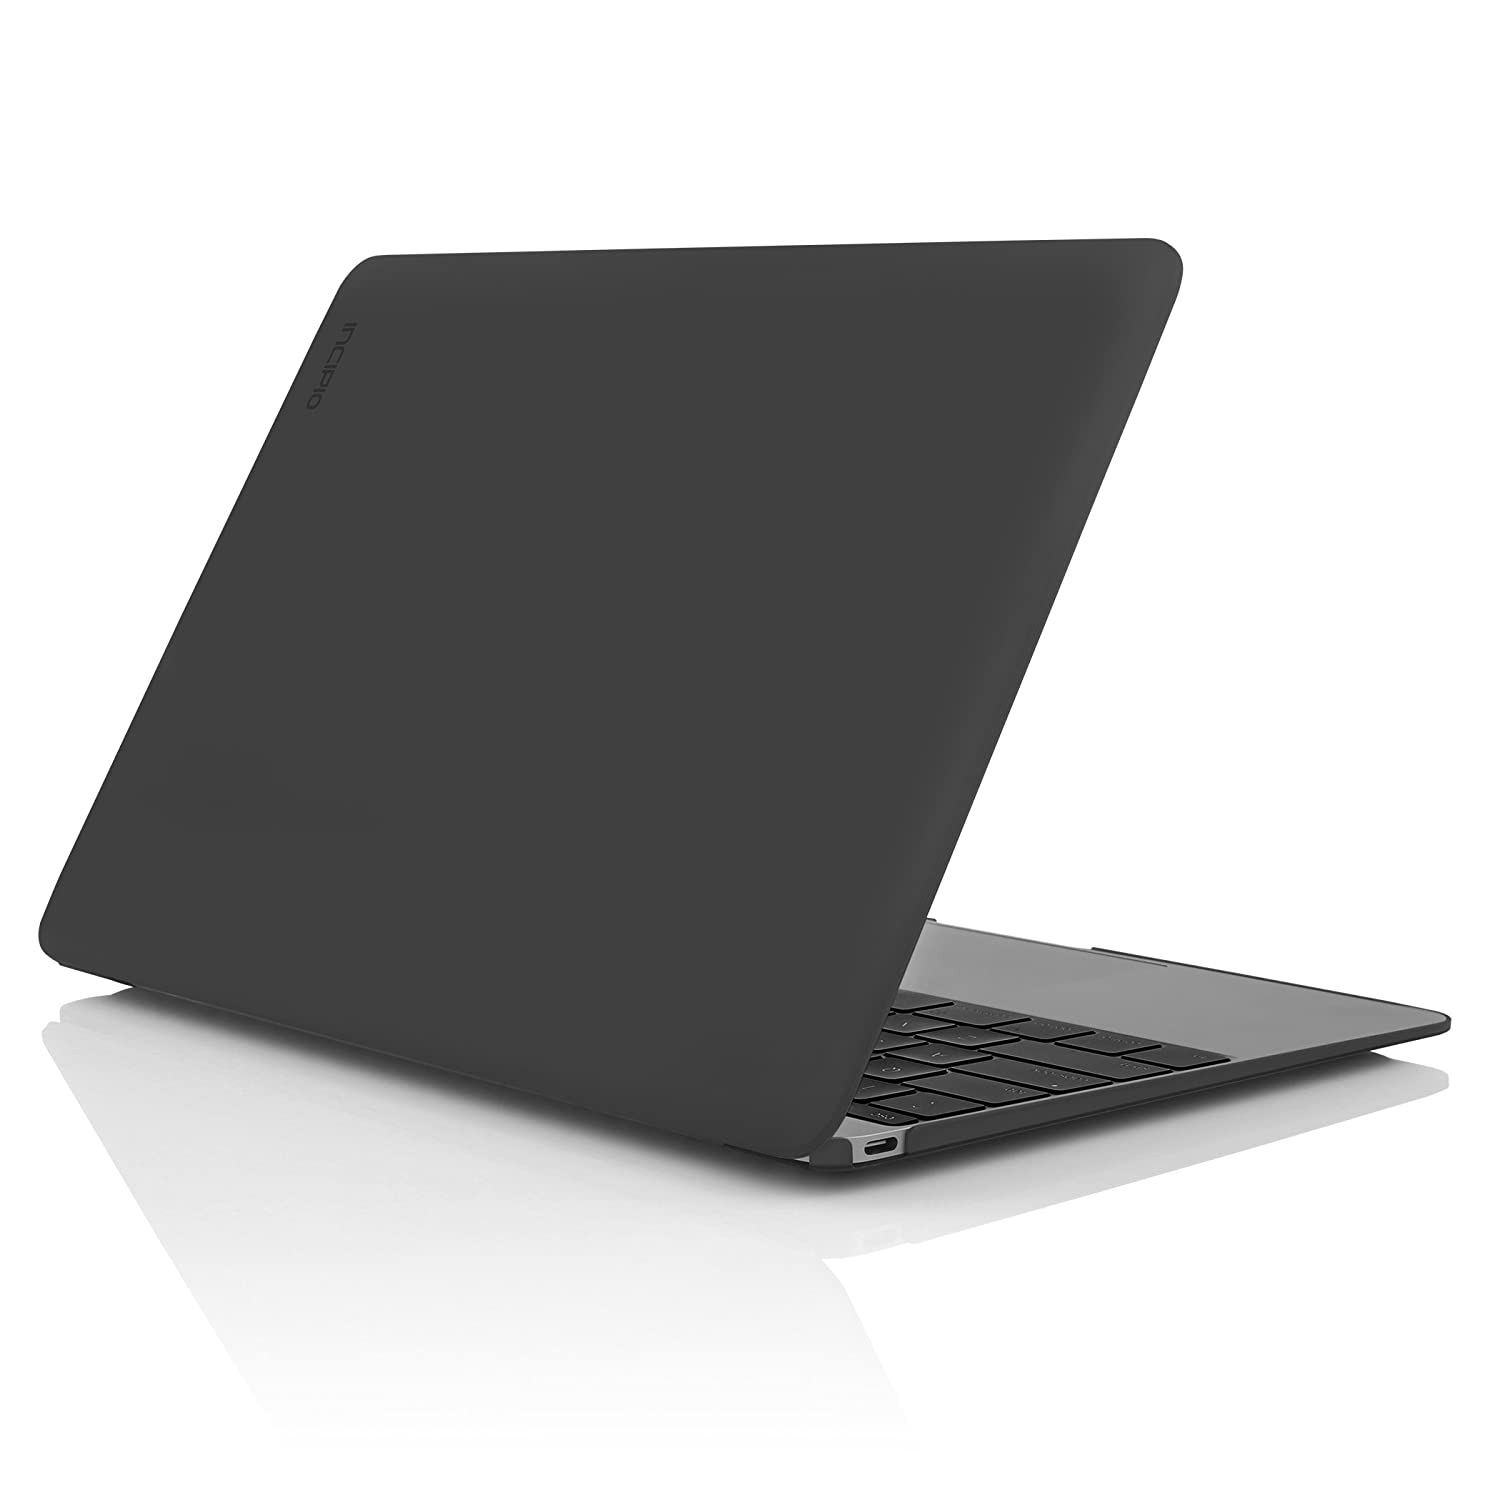 Incipio Incipio Incipio Feather Advance - Funda para Surface 3, Color Negro a2e6a9